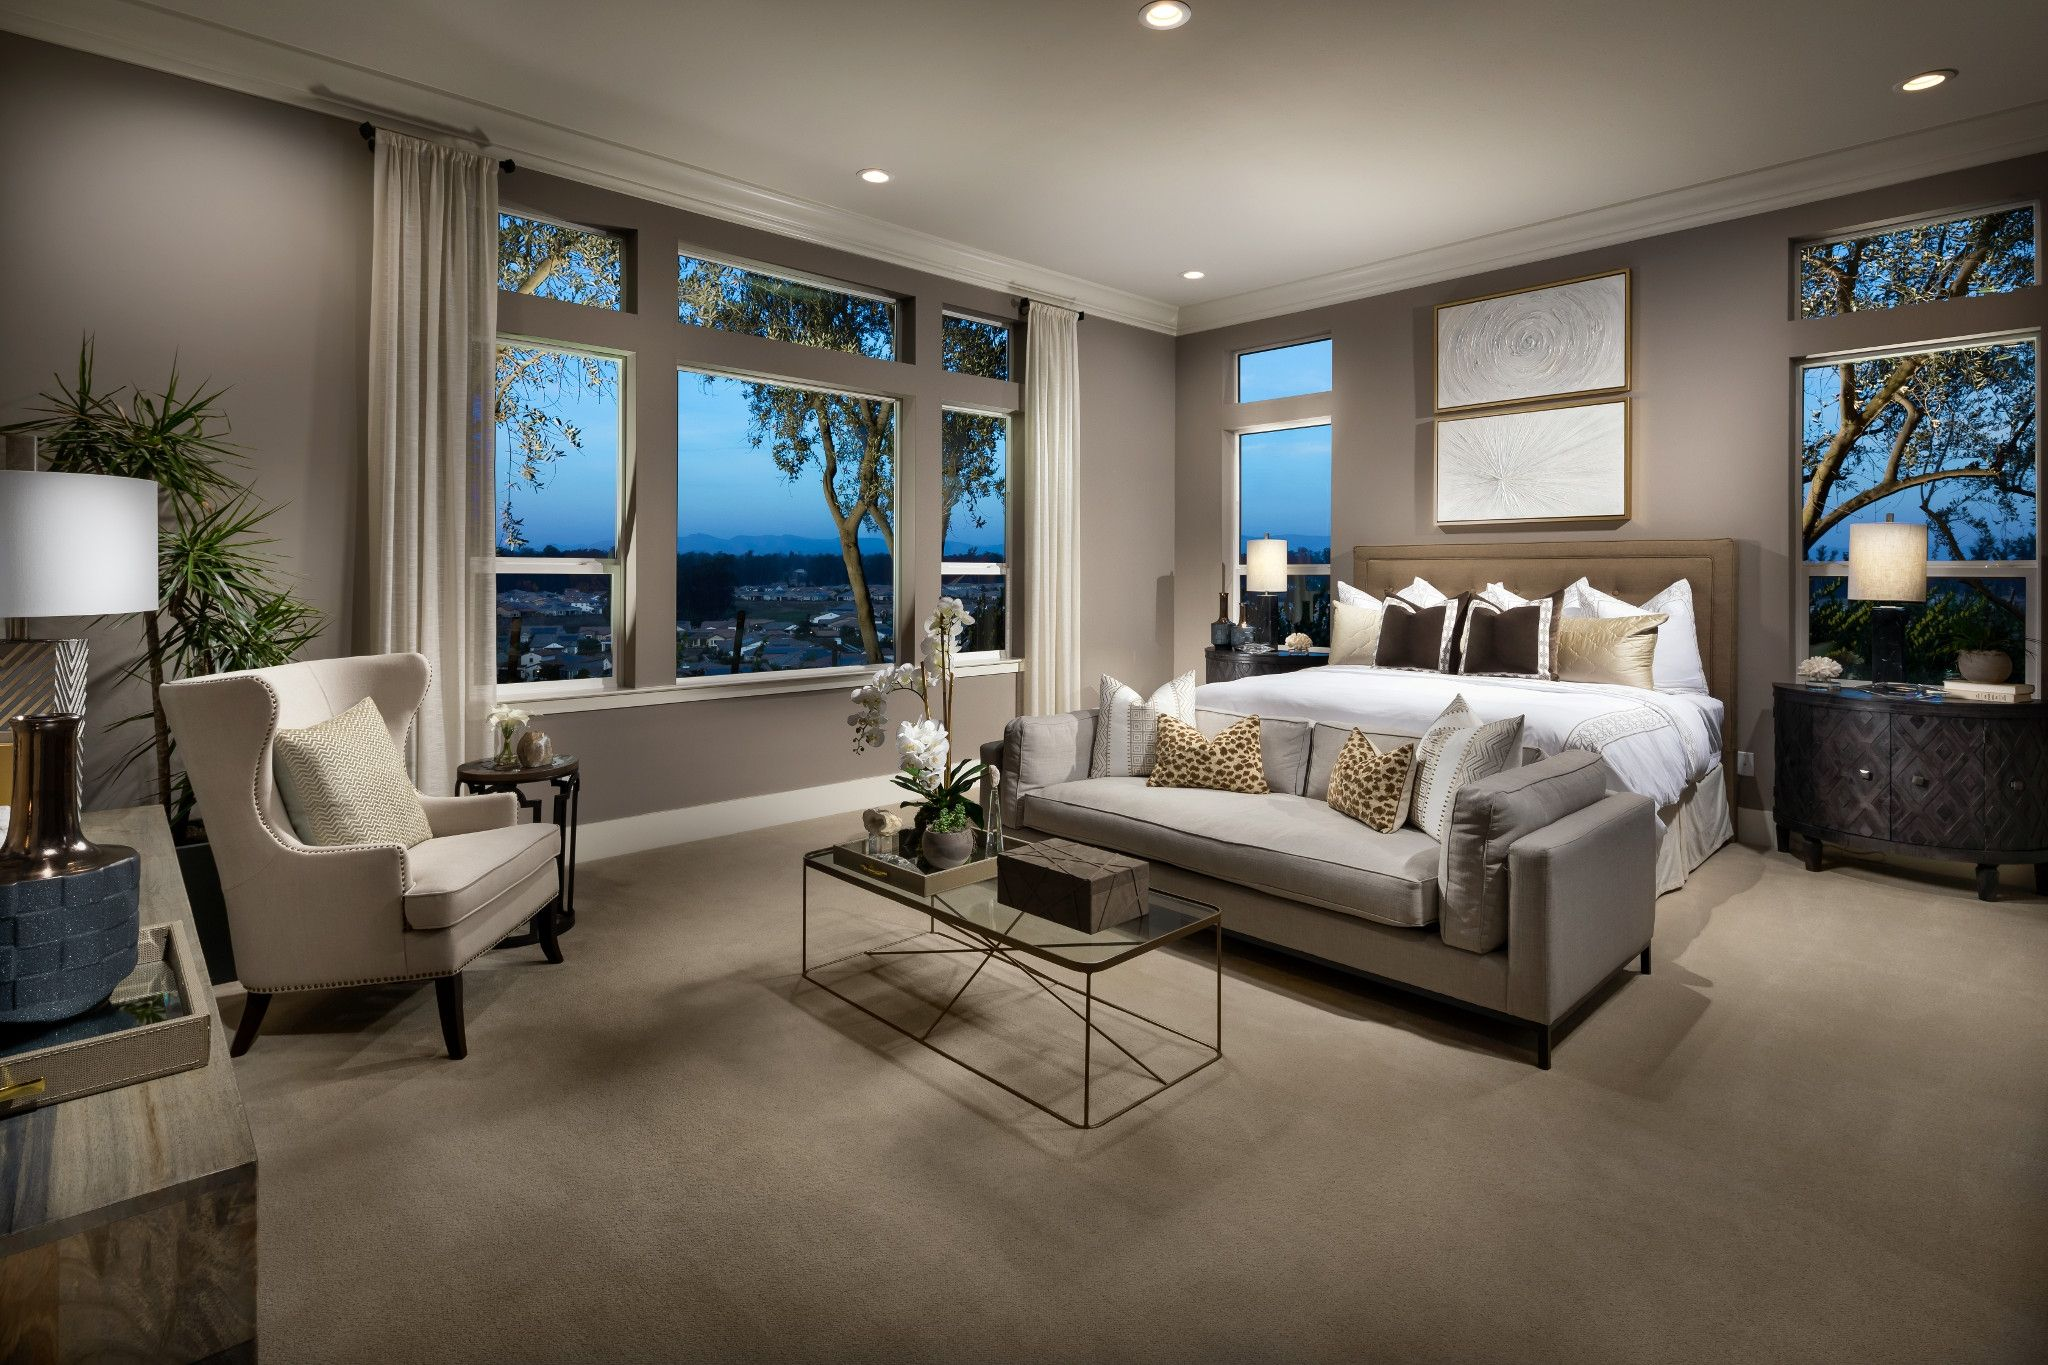 Bedroom featured in the Dolcetto By Shea Homes - Trilogy in San Luis Obispo, CA